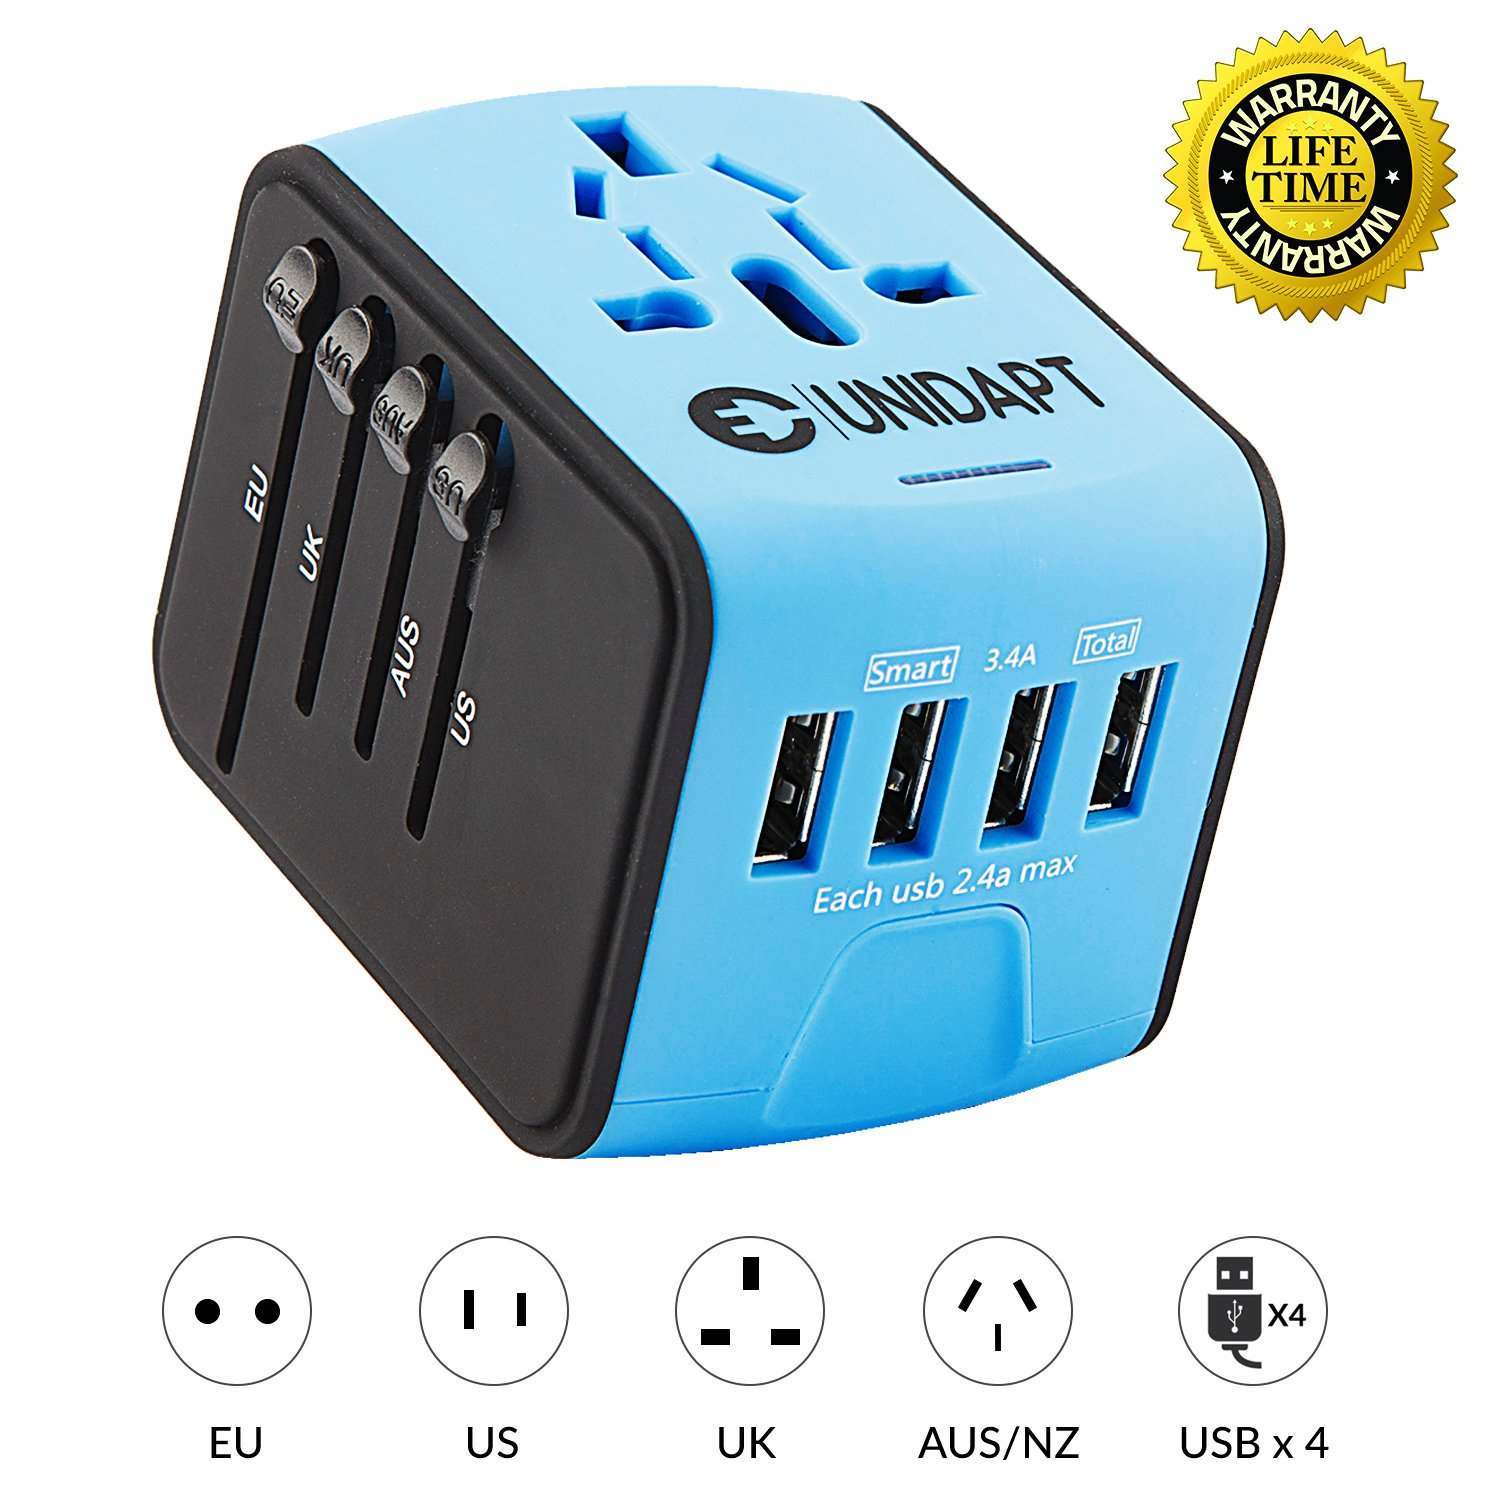 Unidapt Universal Travel Power Adapter, European Adapter, Fast 2,4A 4-USB Worldwide International Power Charger, AC Wall Plug Adapter - All in One for US, UK, EU, AUS & Asia by Unidapt